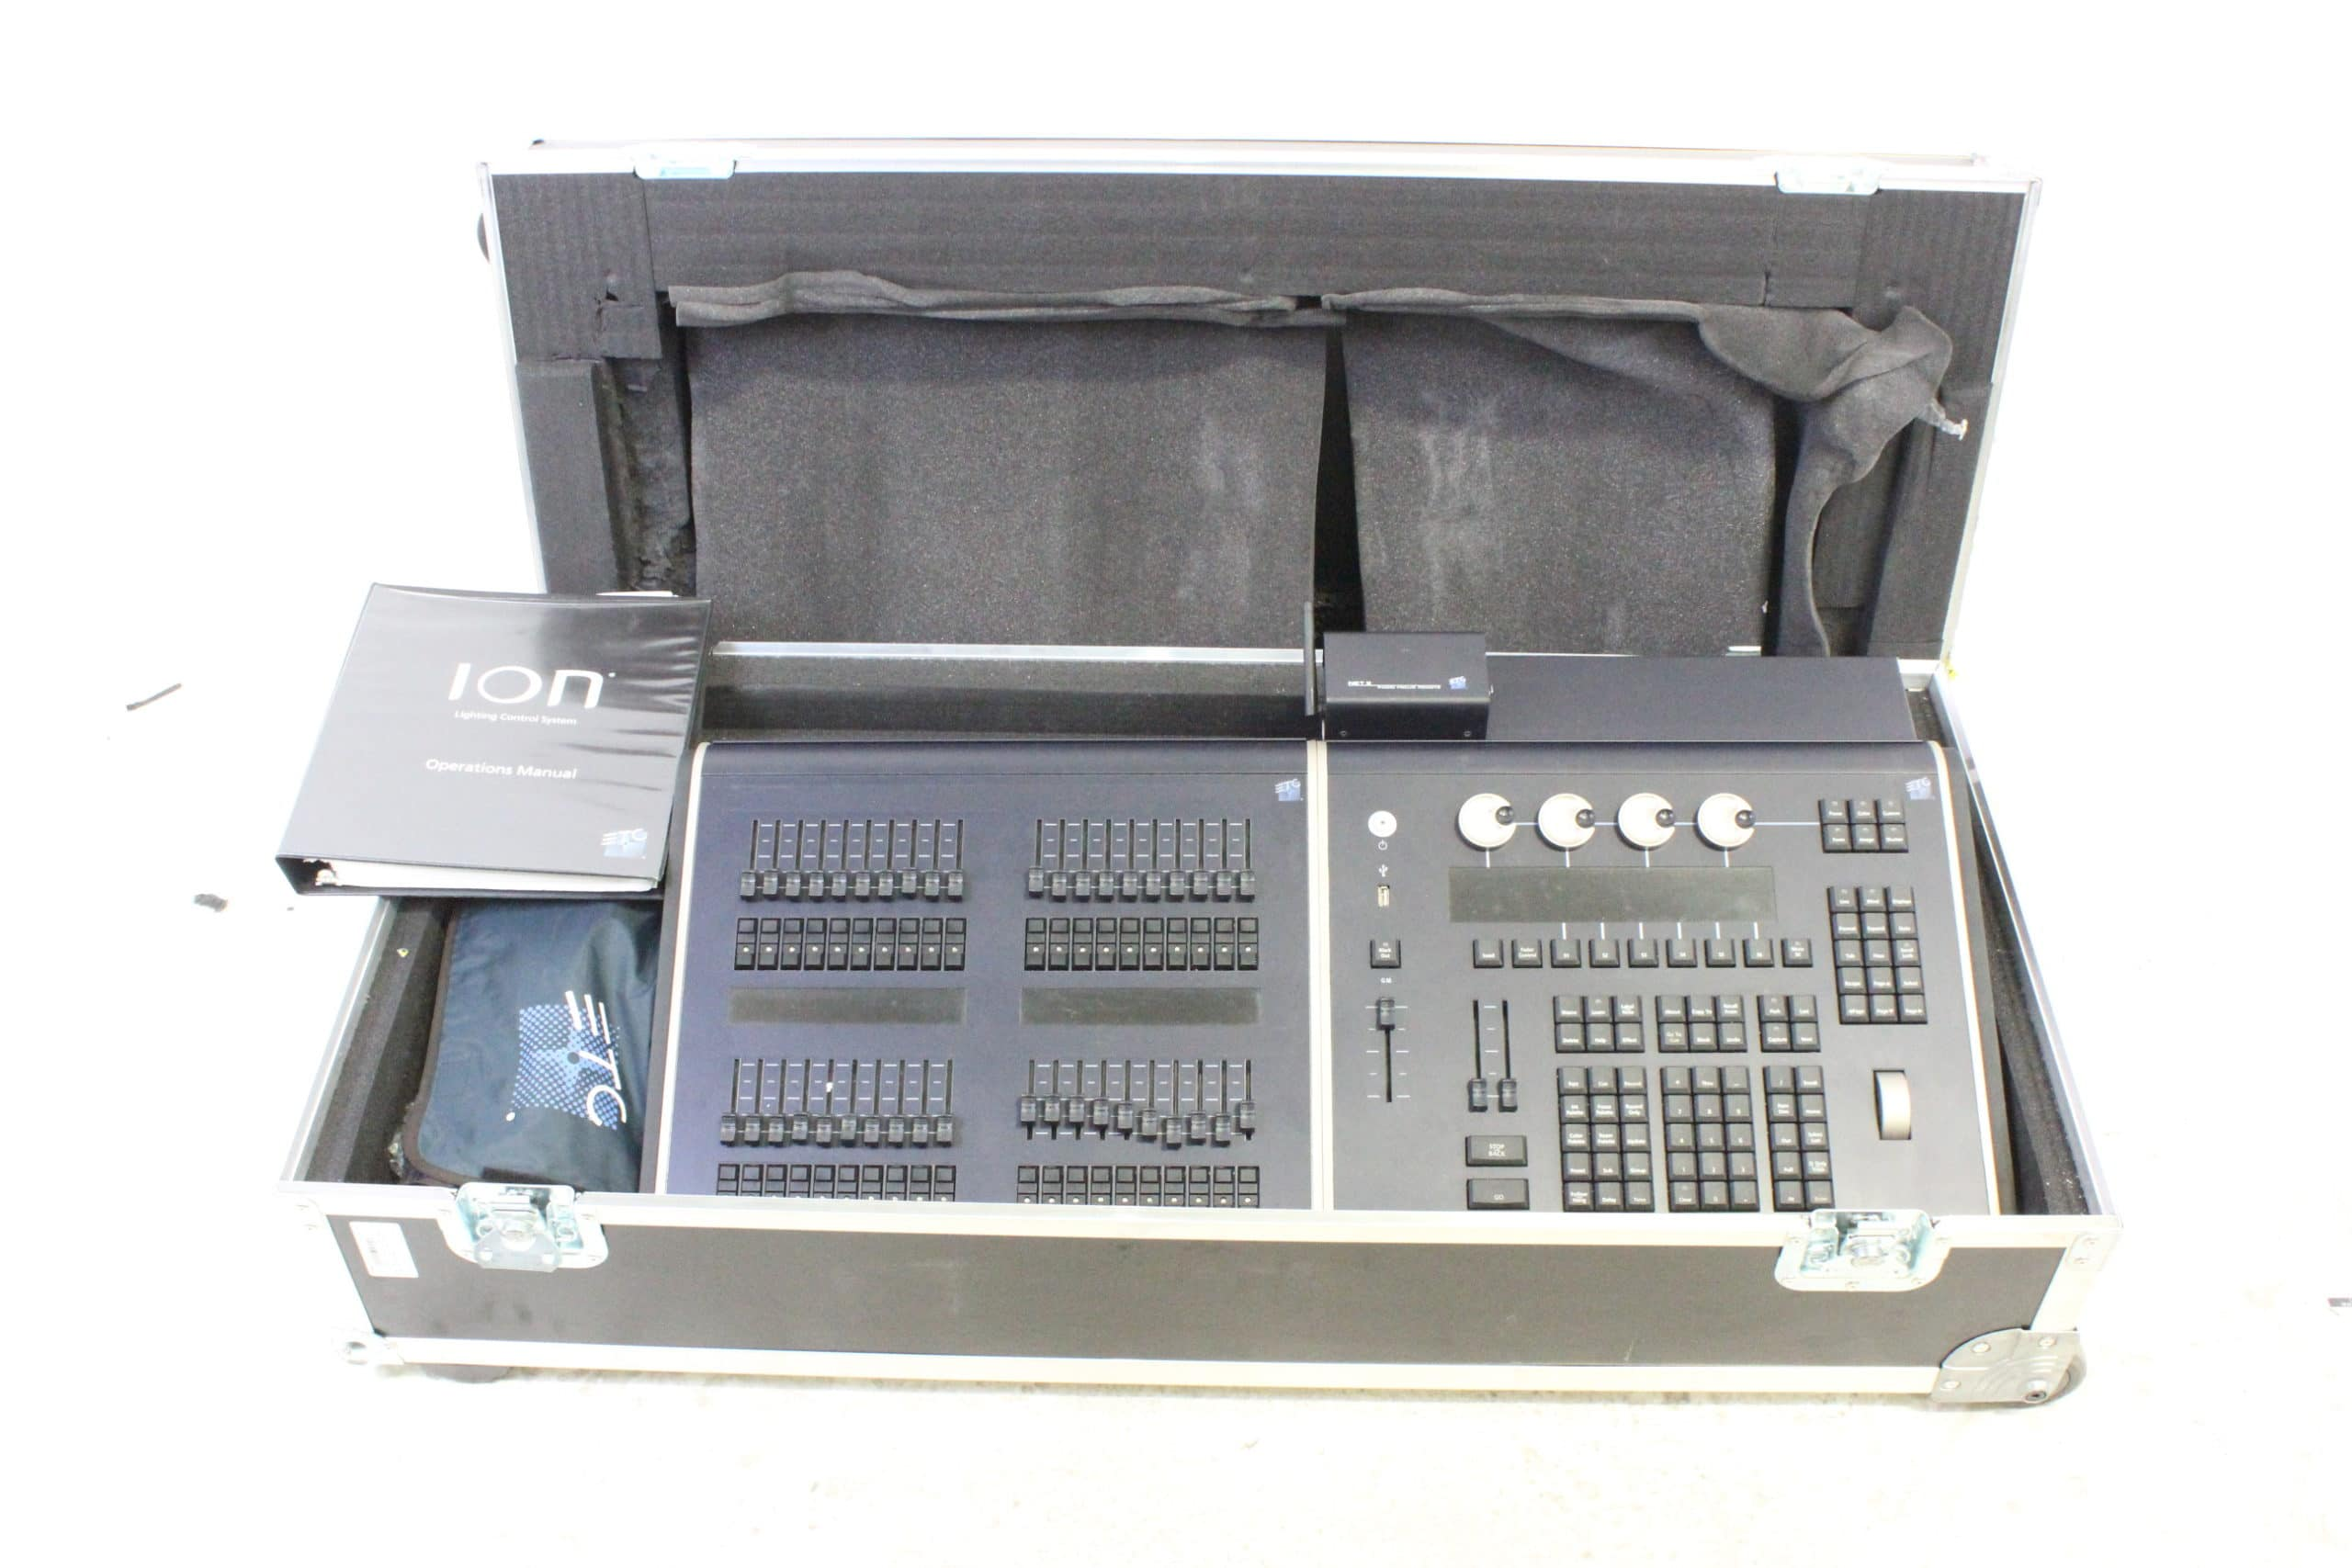 etc-ion-6000-console-w-2x20-fader-wing-power-cable-dust-cover-net3-radio-focus-remote MAIN